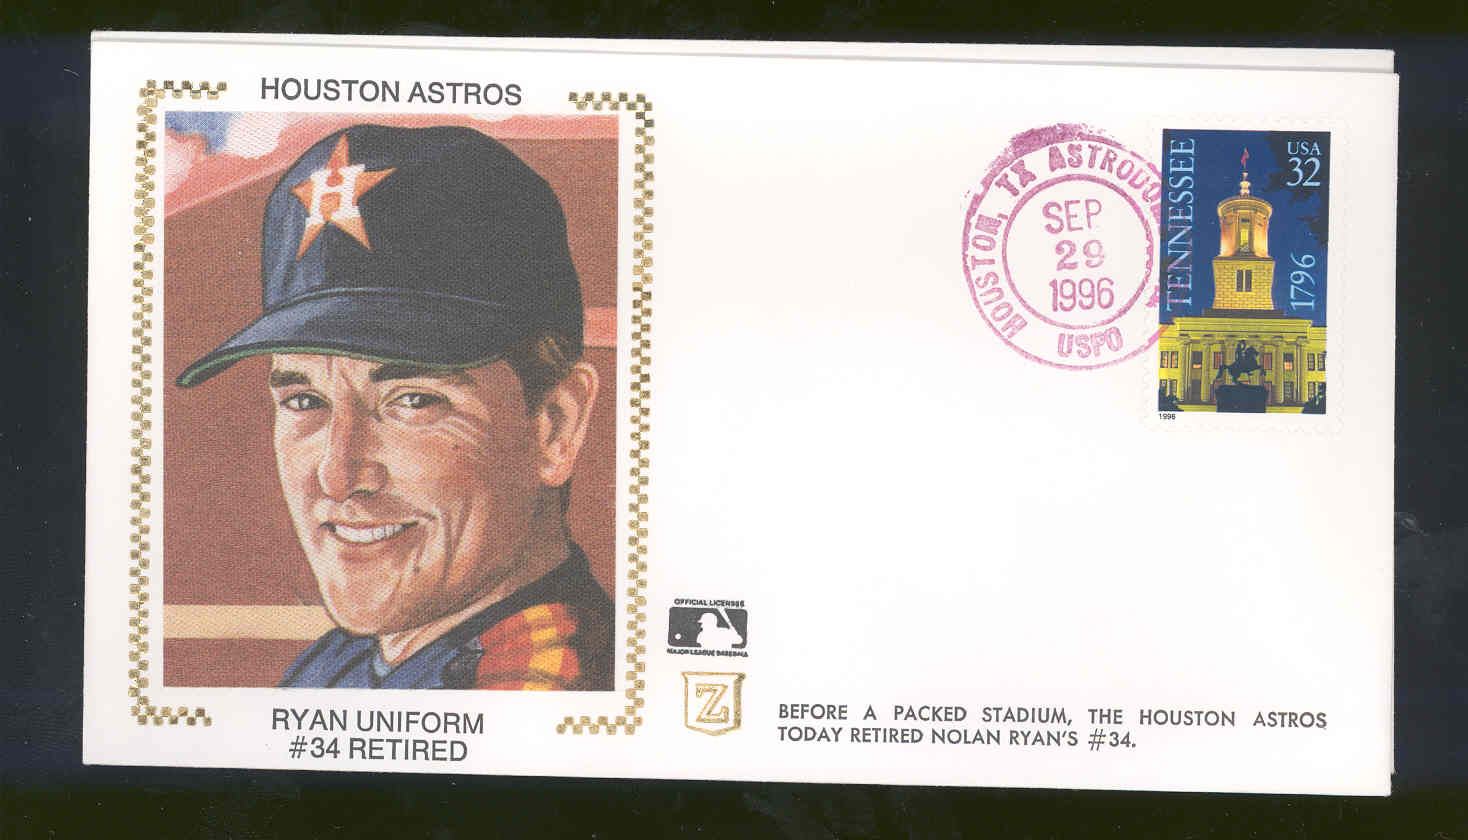 Sep 29,1996 First Day Cover Nolan Ryan Houston Astros #34 Retired